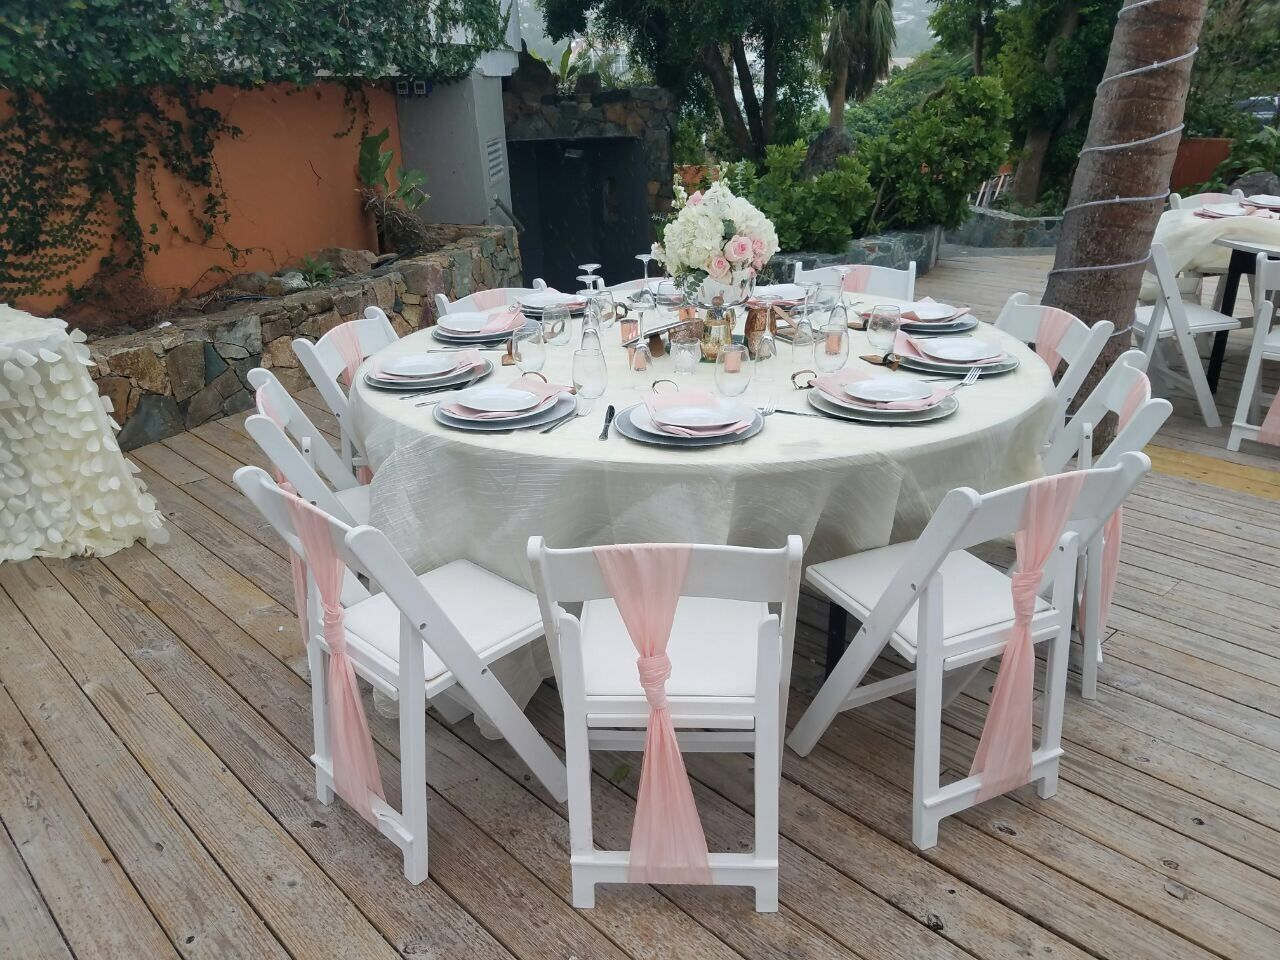 Wedding Decoration For Rent In 2020 Classy Wedding Decor Wedding Rentals Decor Cheap Wedding Decorations